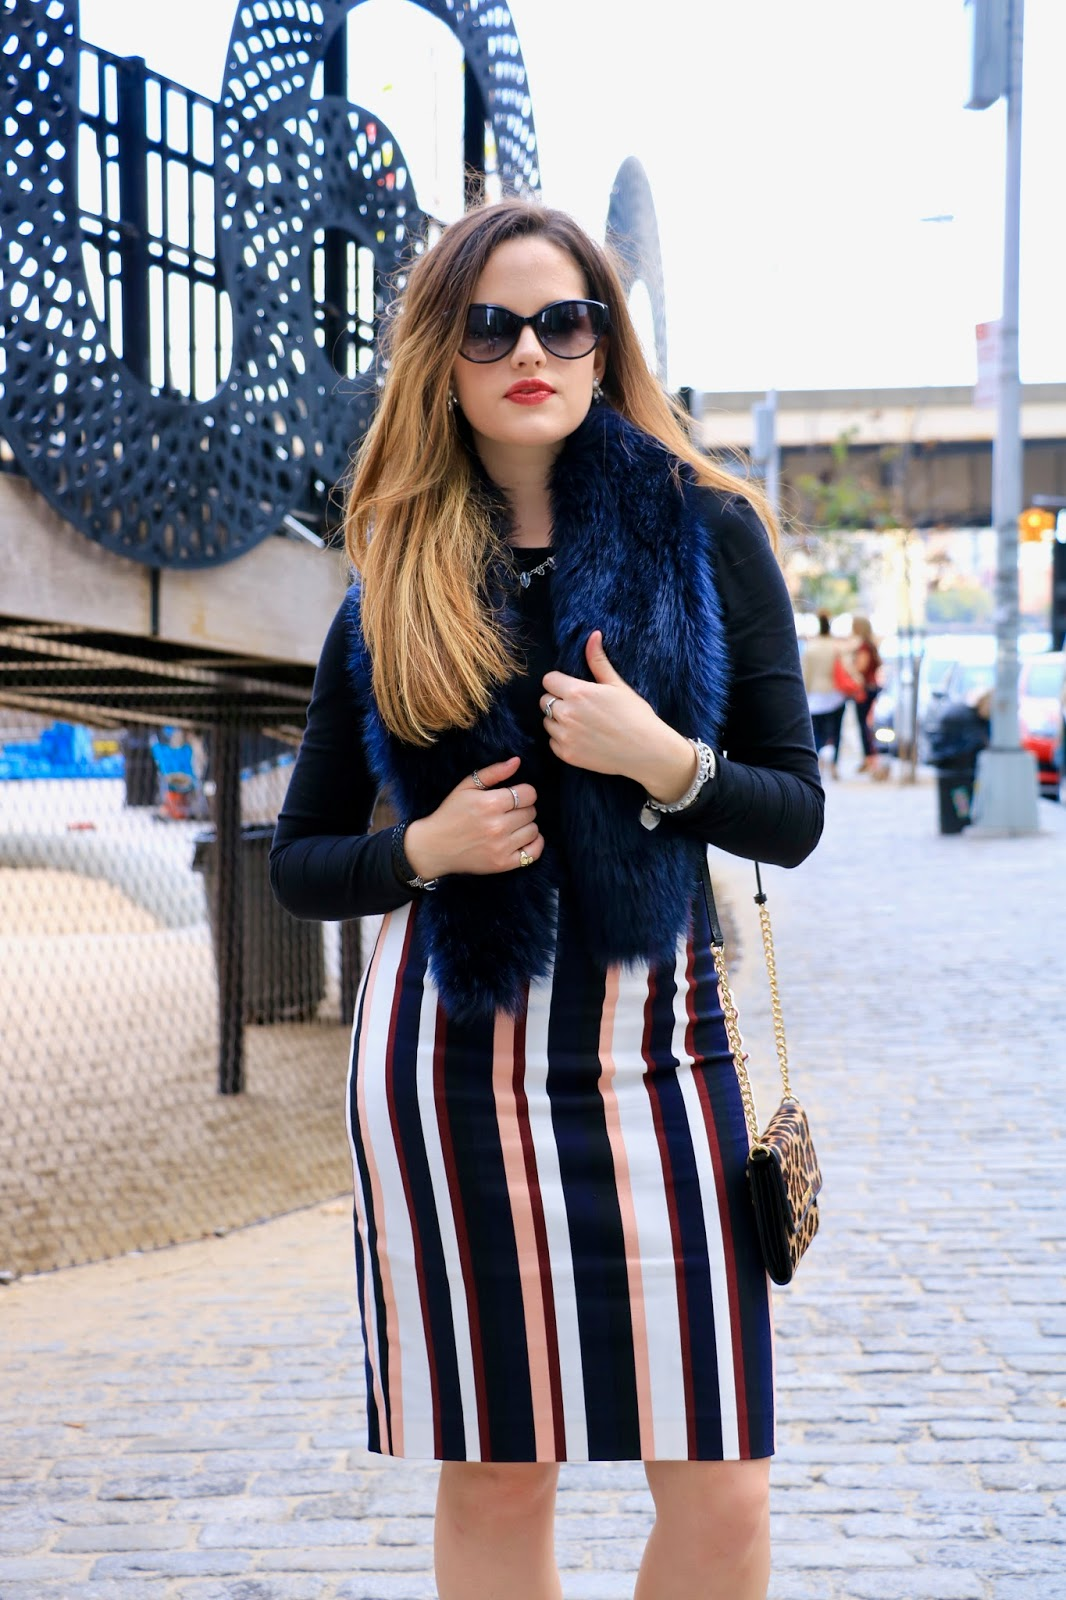 Nyc fashion blogger Kathleen Harper showing how to wear a striped pencil skirt